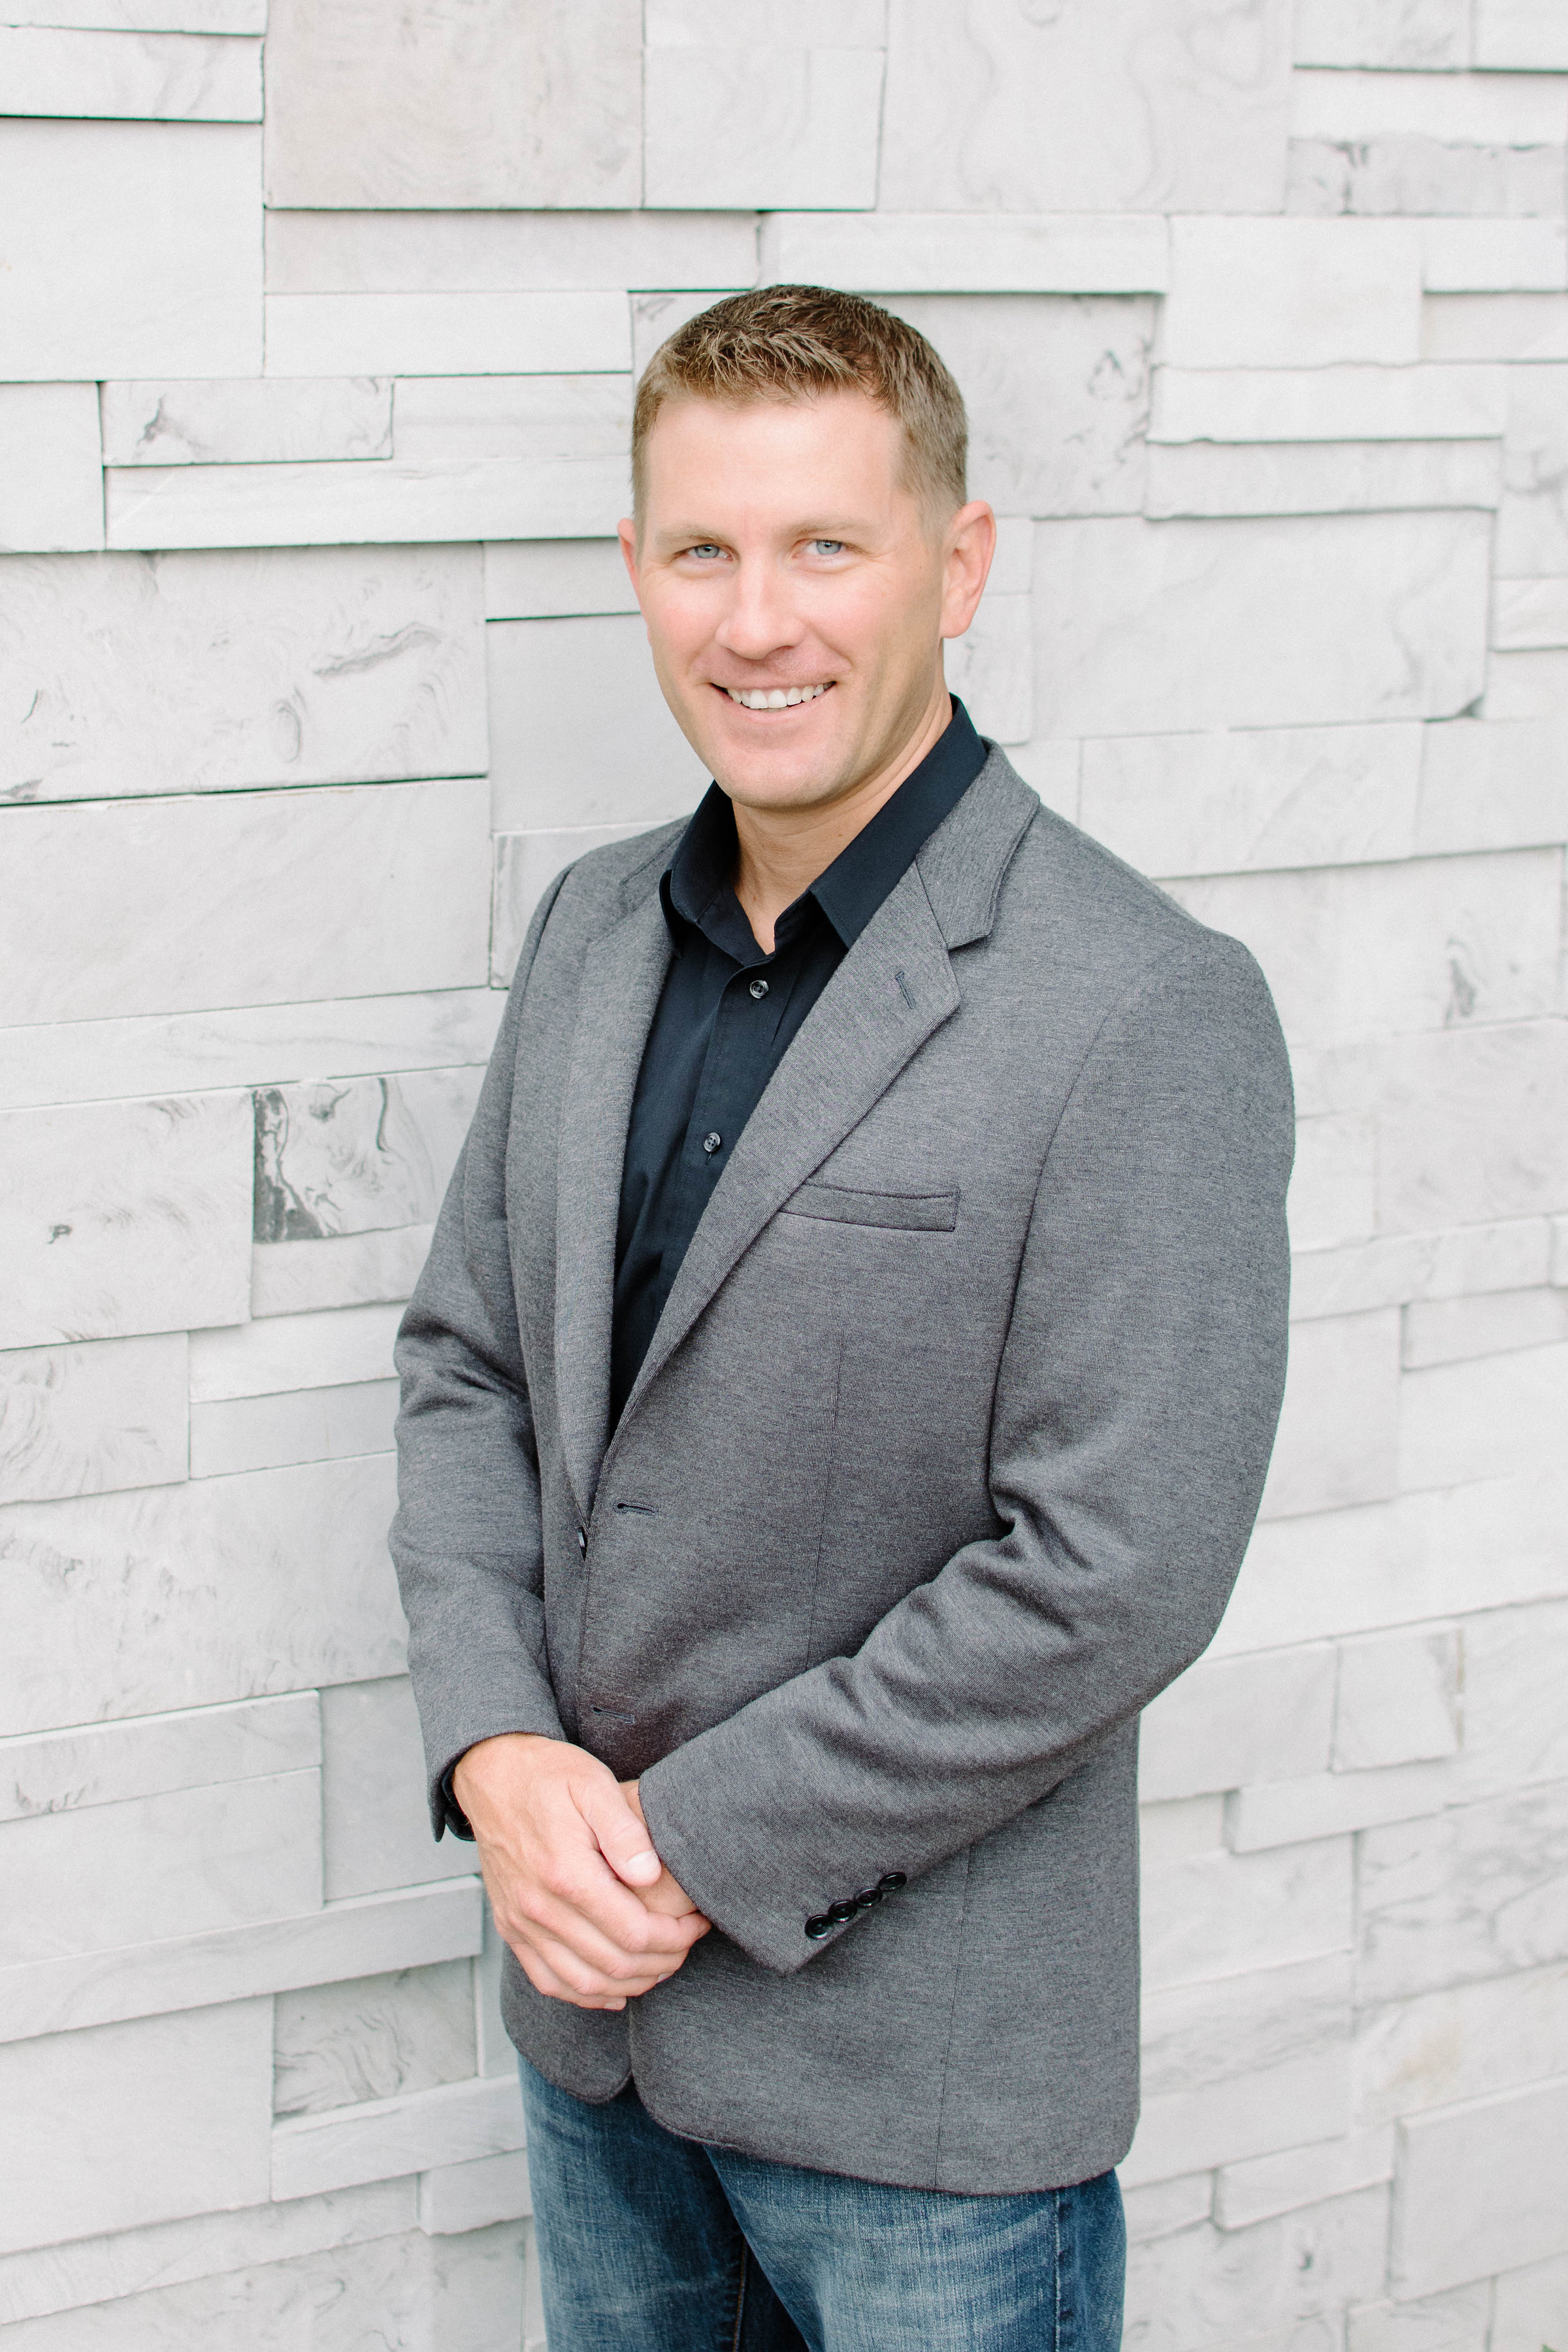 brian mongar, omaha real estate agent